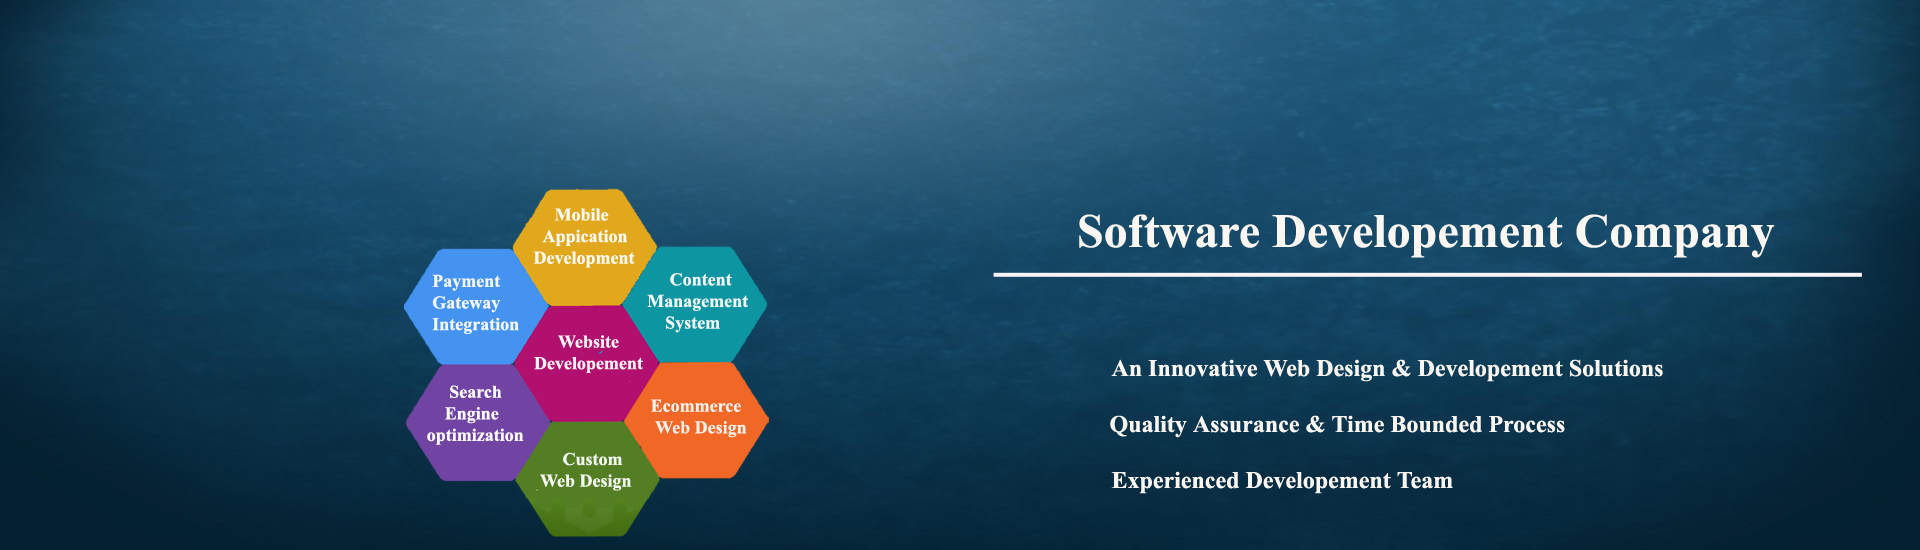 desktop application developement in jodhpur,web application developement in johpur, SEO provider company in jodhpur, Software company in jodhpur